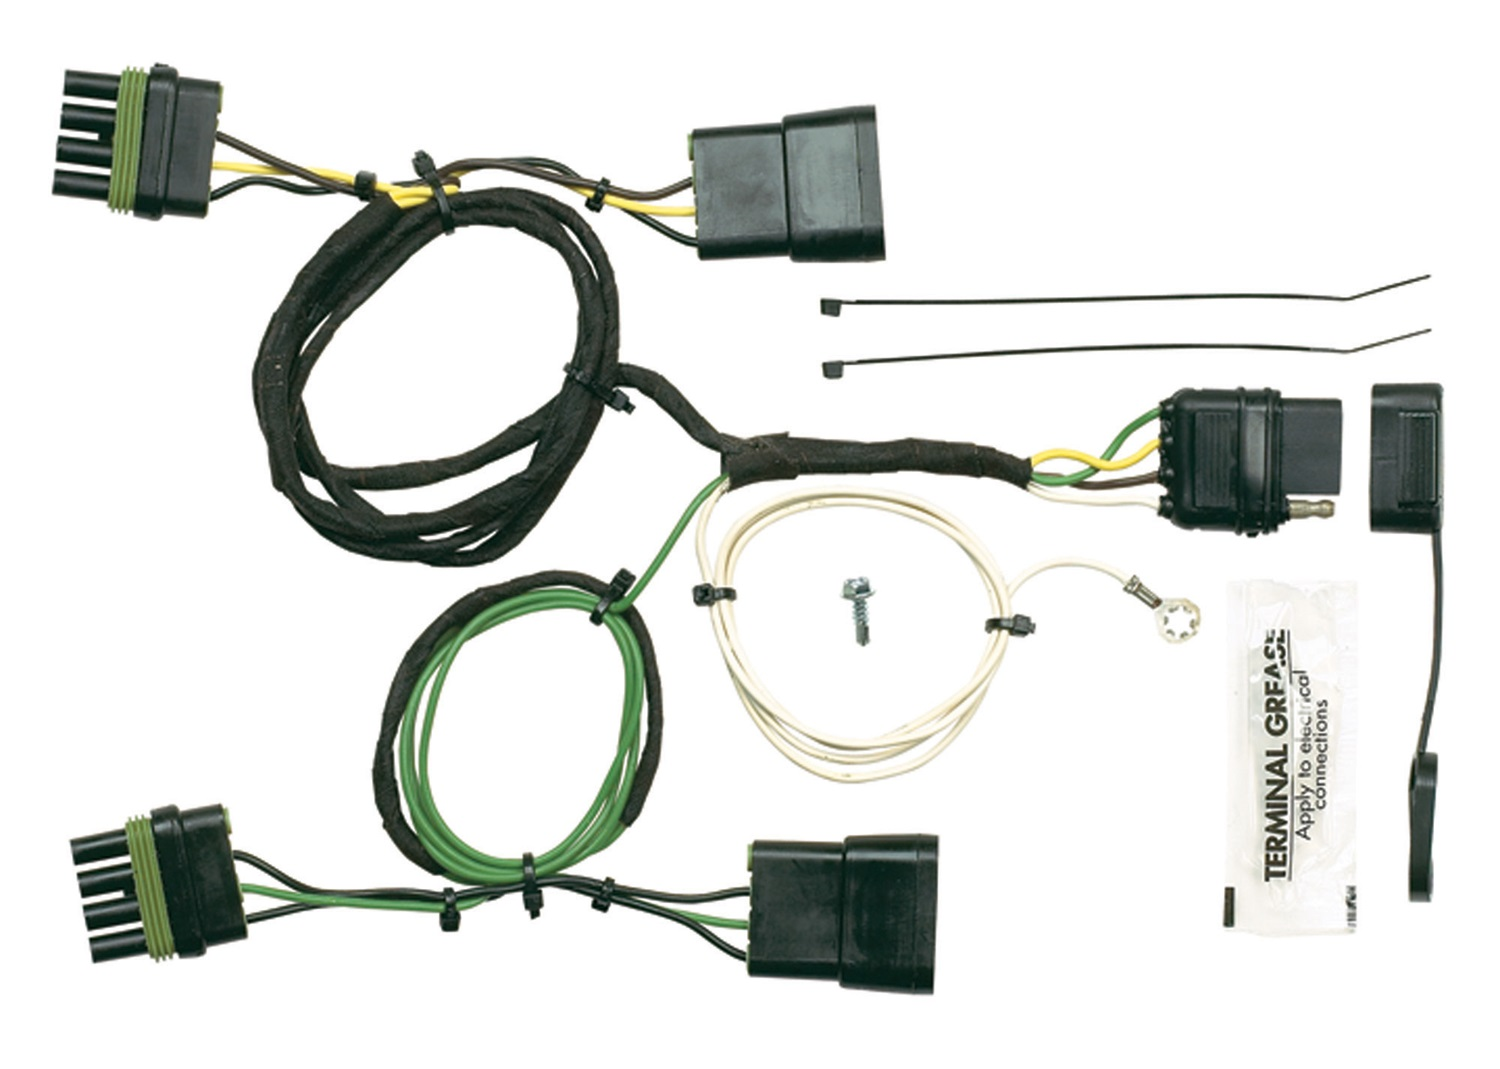 hopkins 40955 wiring diagram hopkins 47185 wiring